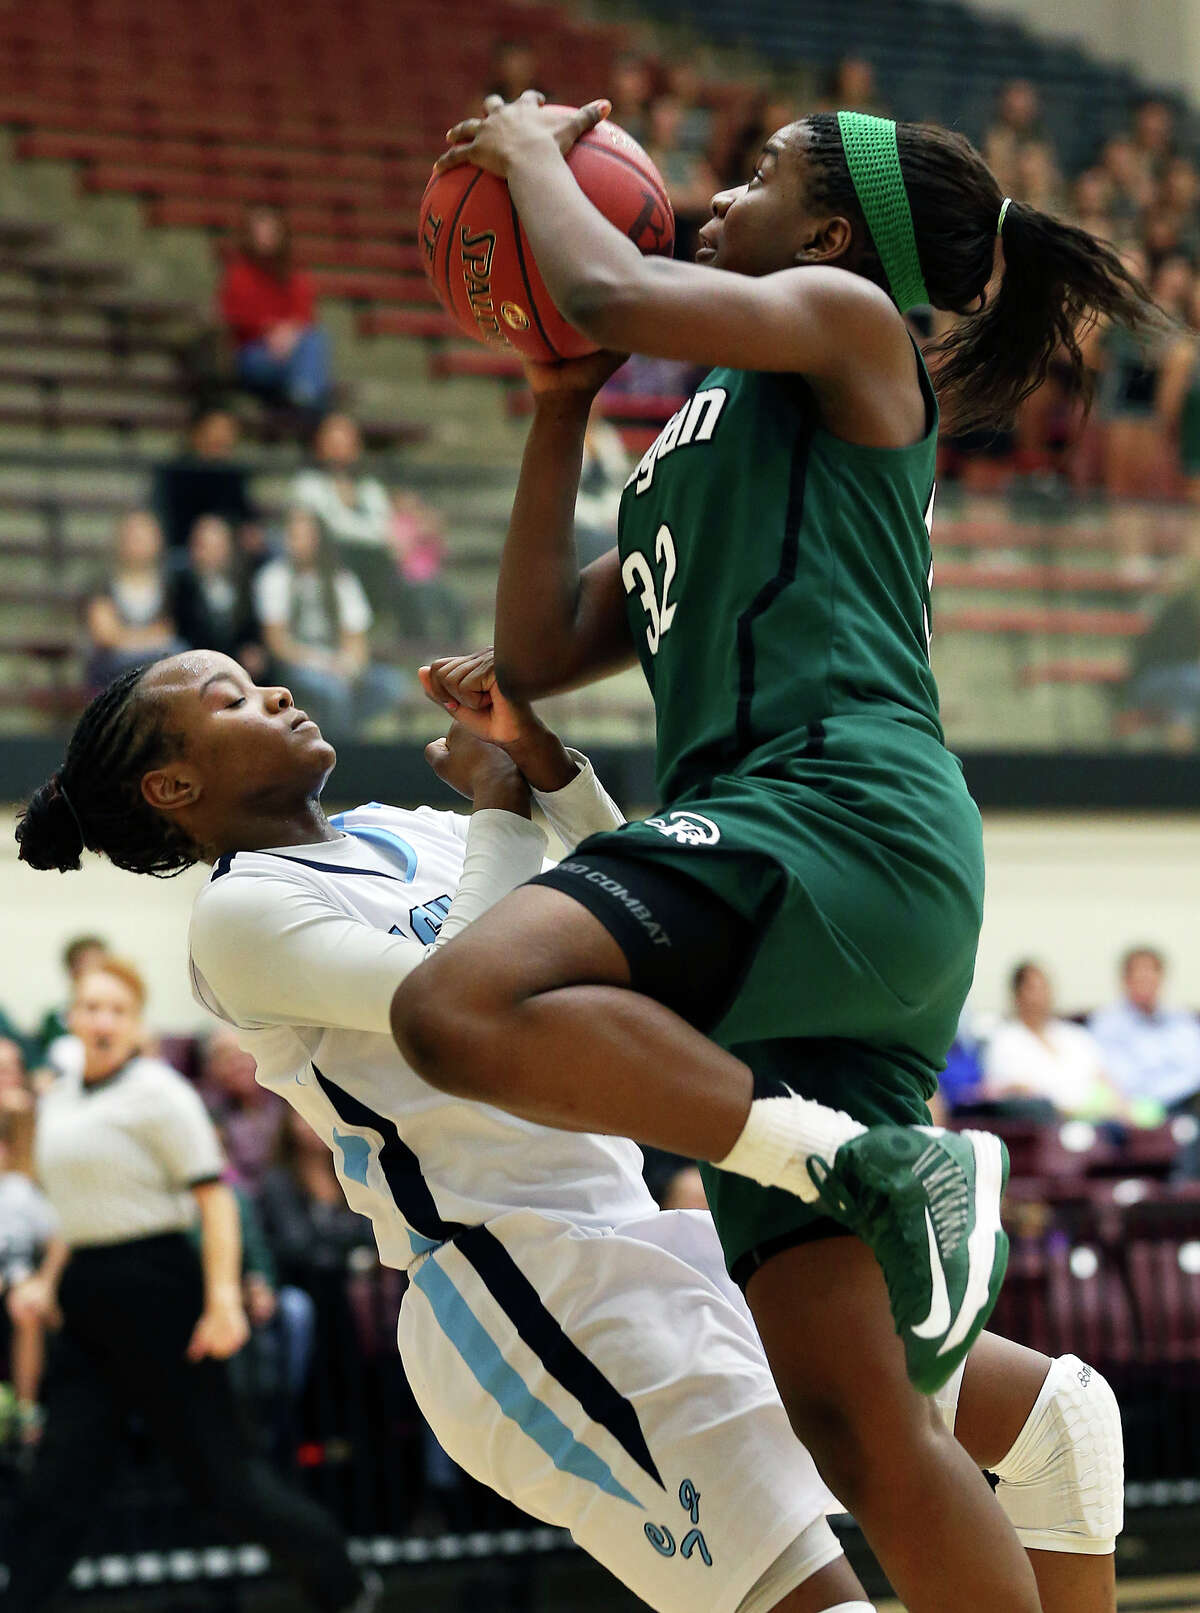 Reagan's Moriah Mack moves to the bucket on Erica Sanders as Reagan plays Johnson in girls basketball at Littleton Gym on January 11, 2013.